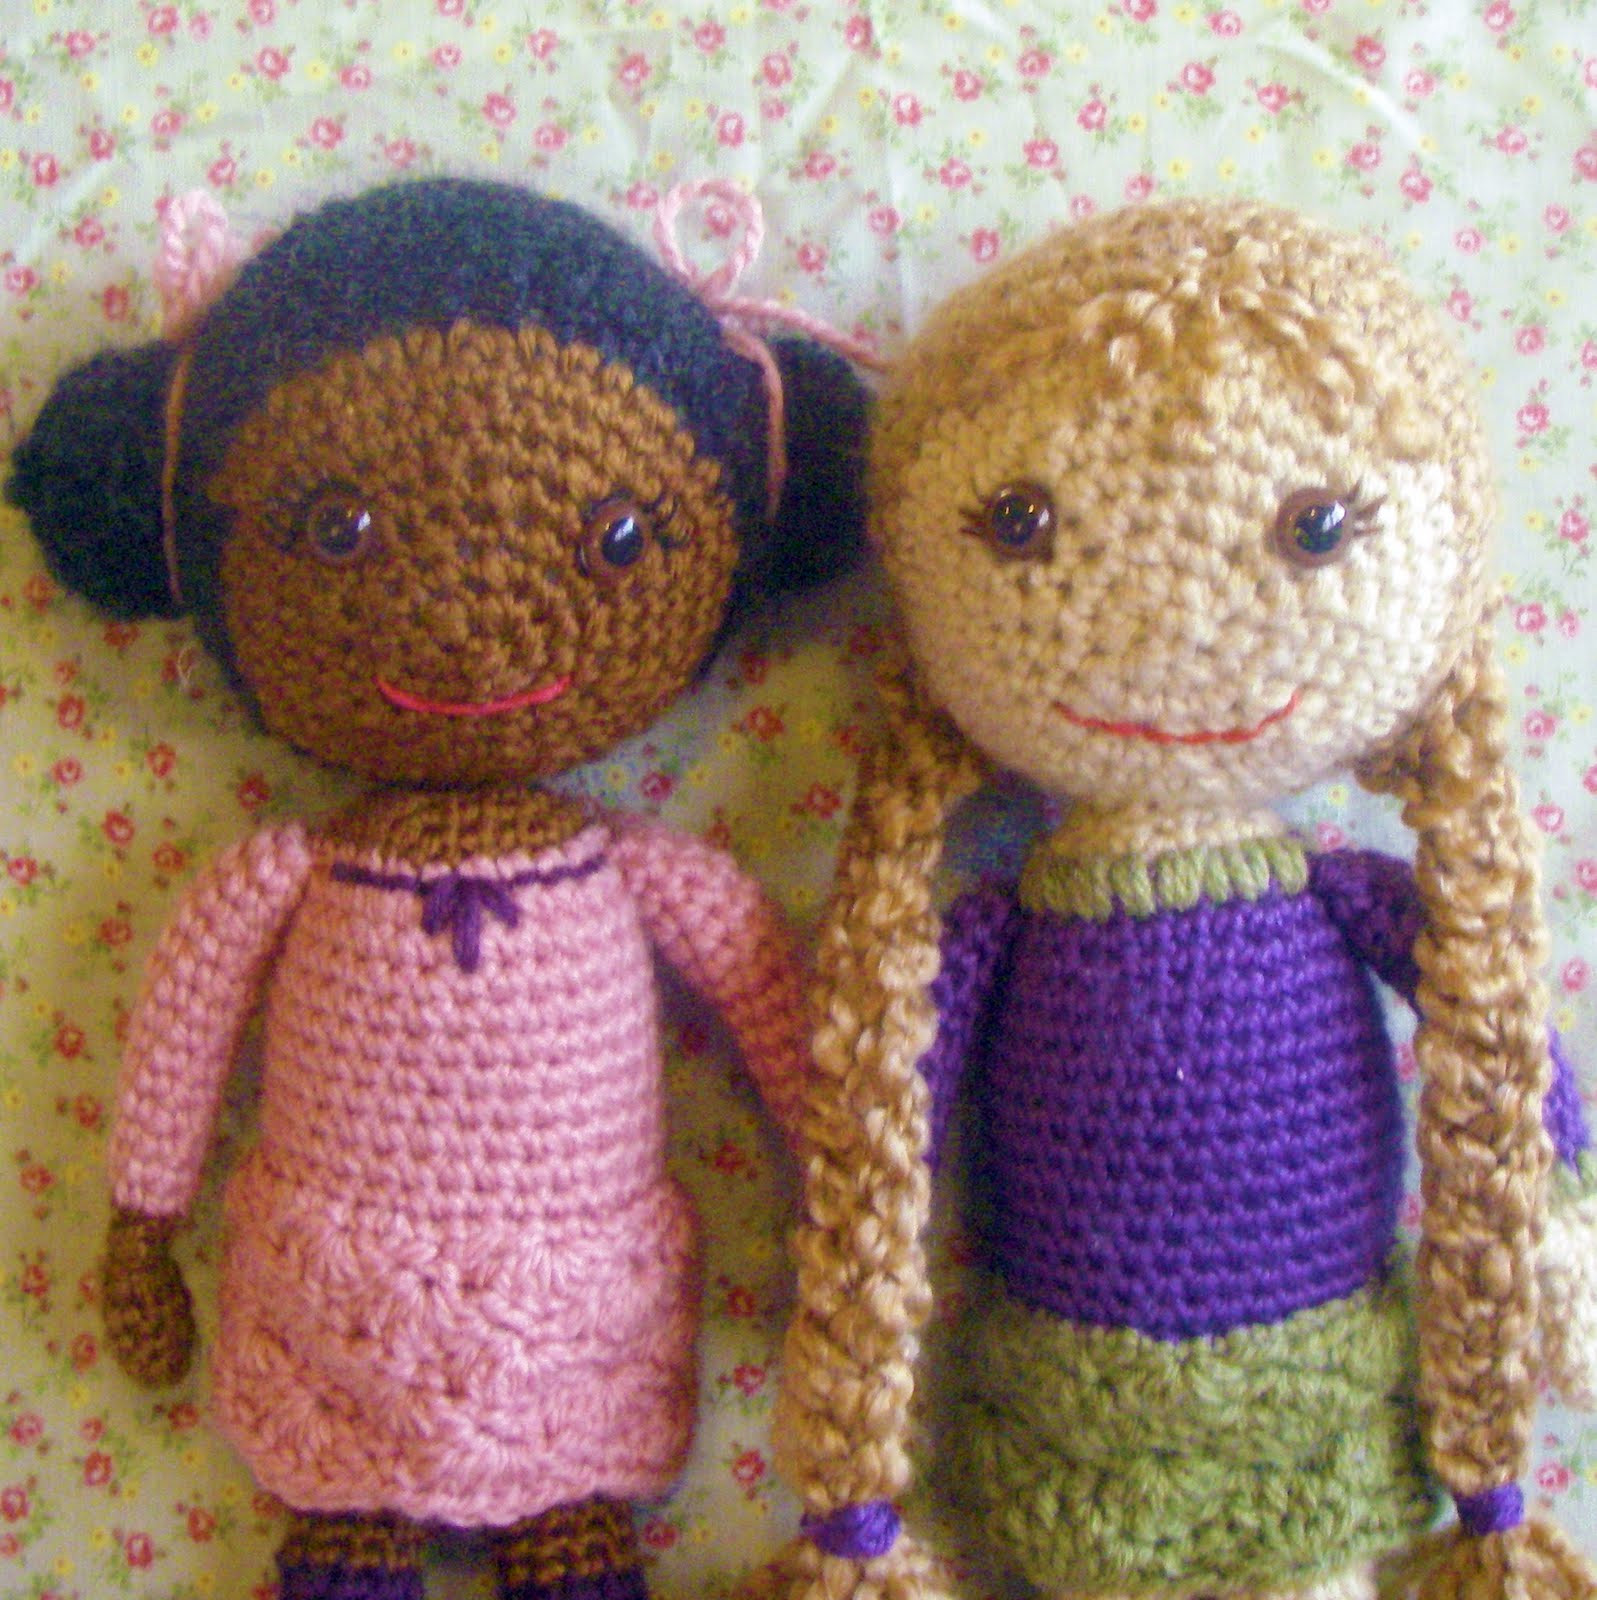 "Doll Patterns Inspirational 12"" Doll Crochet Pattern Mamacheemamachee Of Doll Patterns Best Of Rag Doll Patterns"